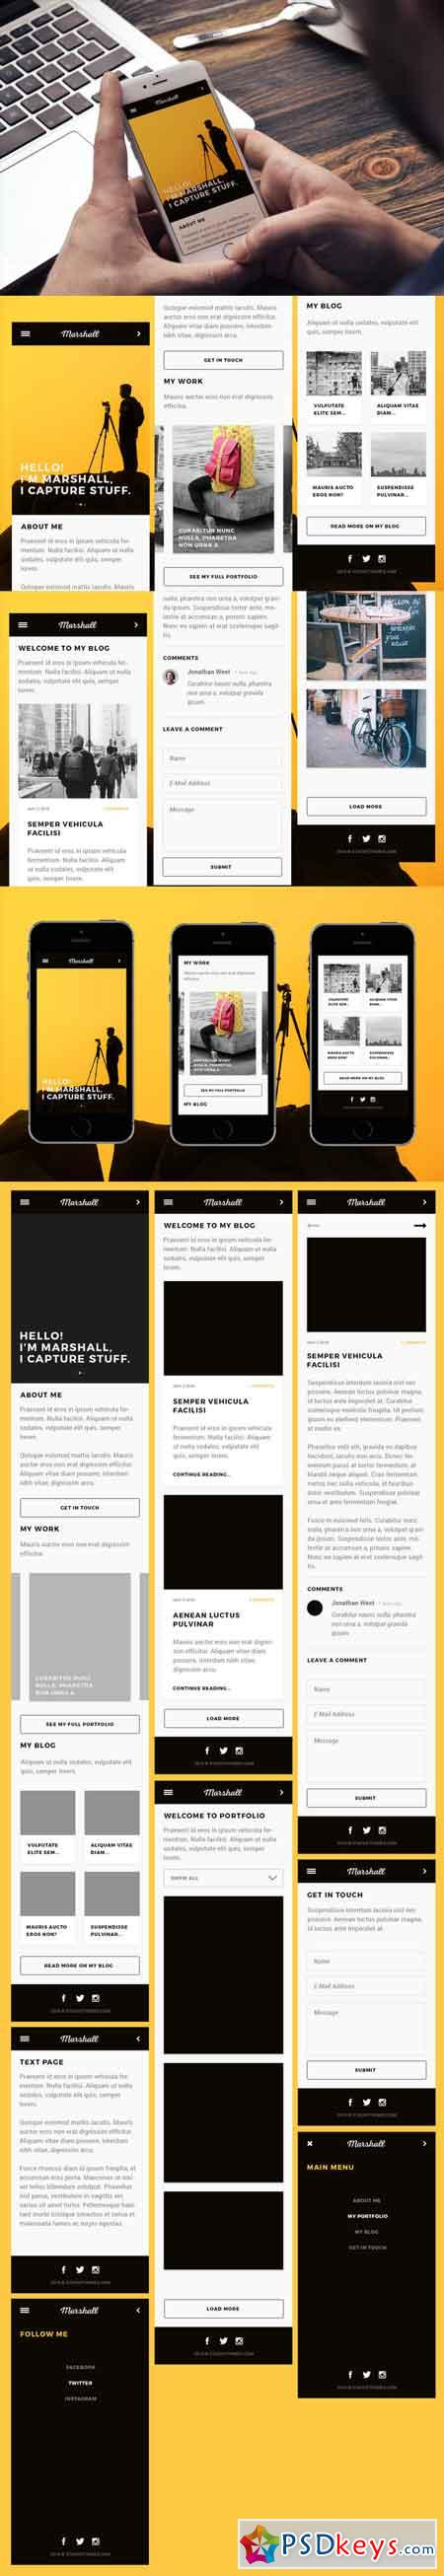 Marshall Mobile Web Psd Template 674250 Free Download Photoshop